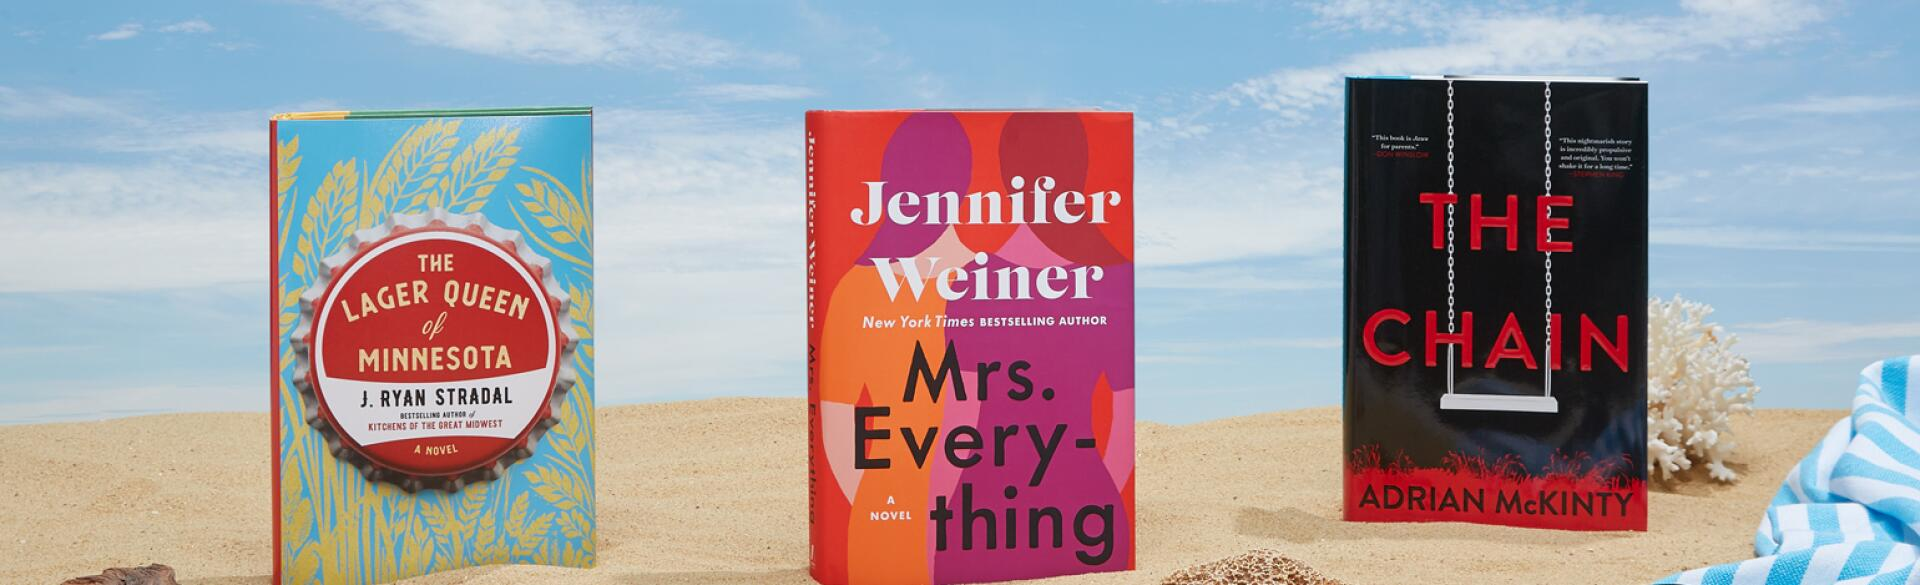 3 summer books on sandy beach The Lager Queen of Minnesota, Mrs. Everything and The Chain